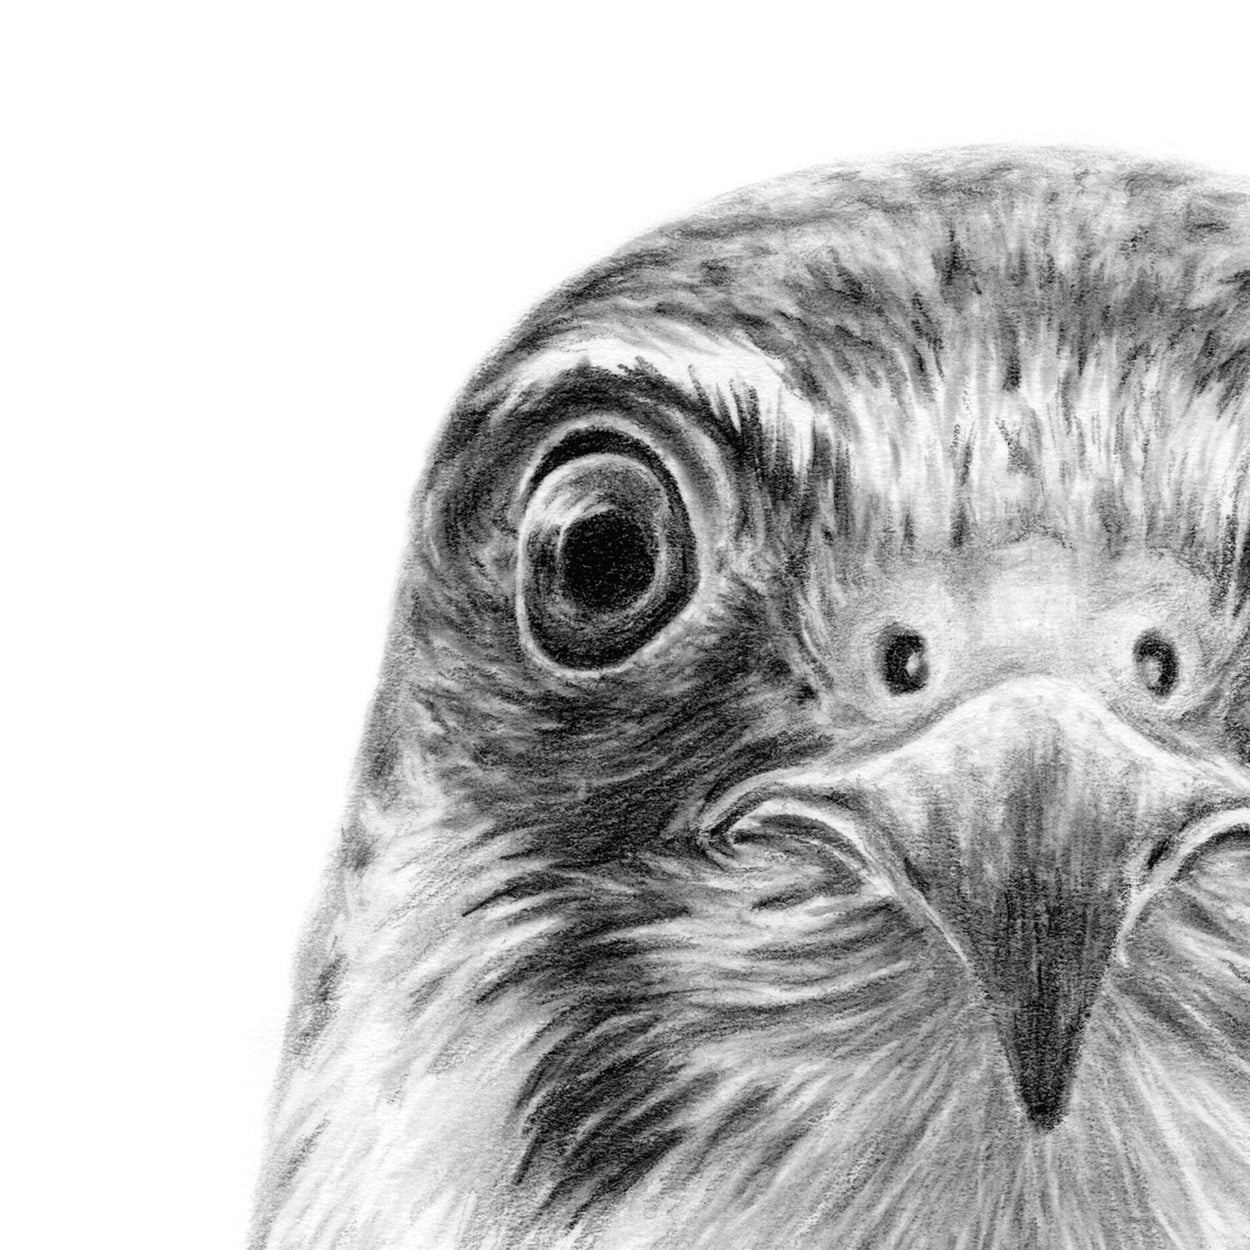 Hobby Drawing Close-up 1 - The Thriving Wild